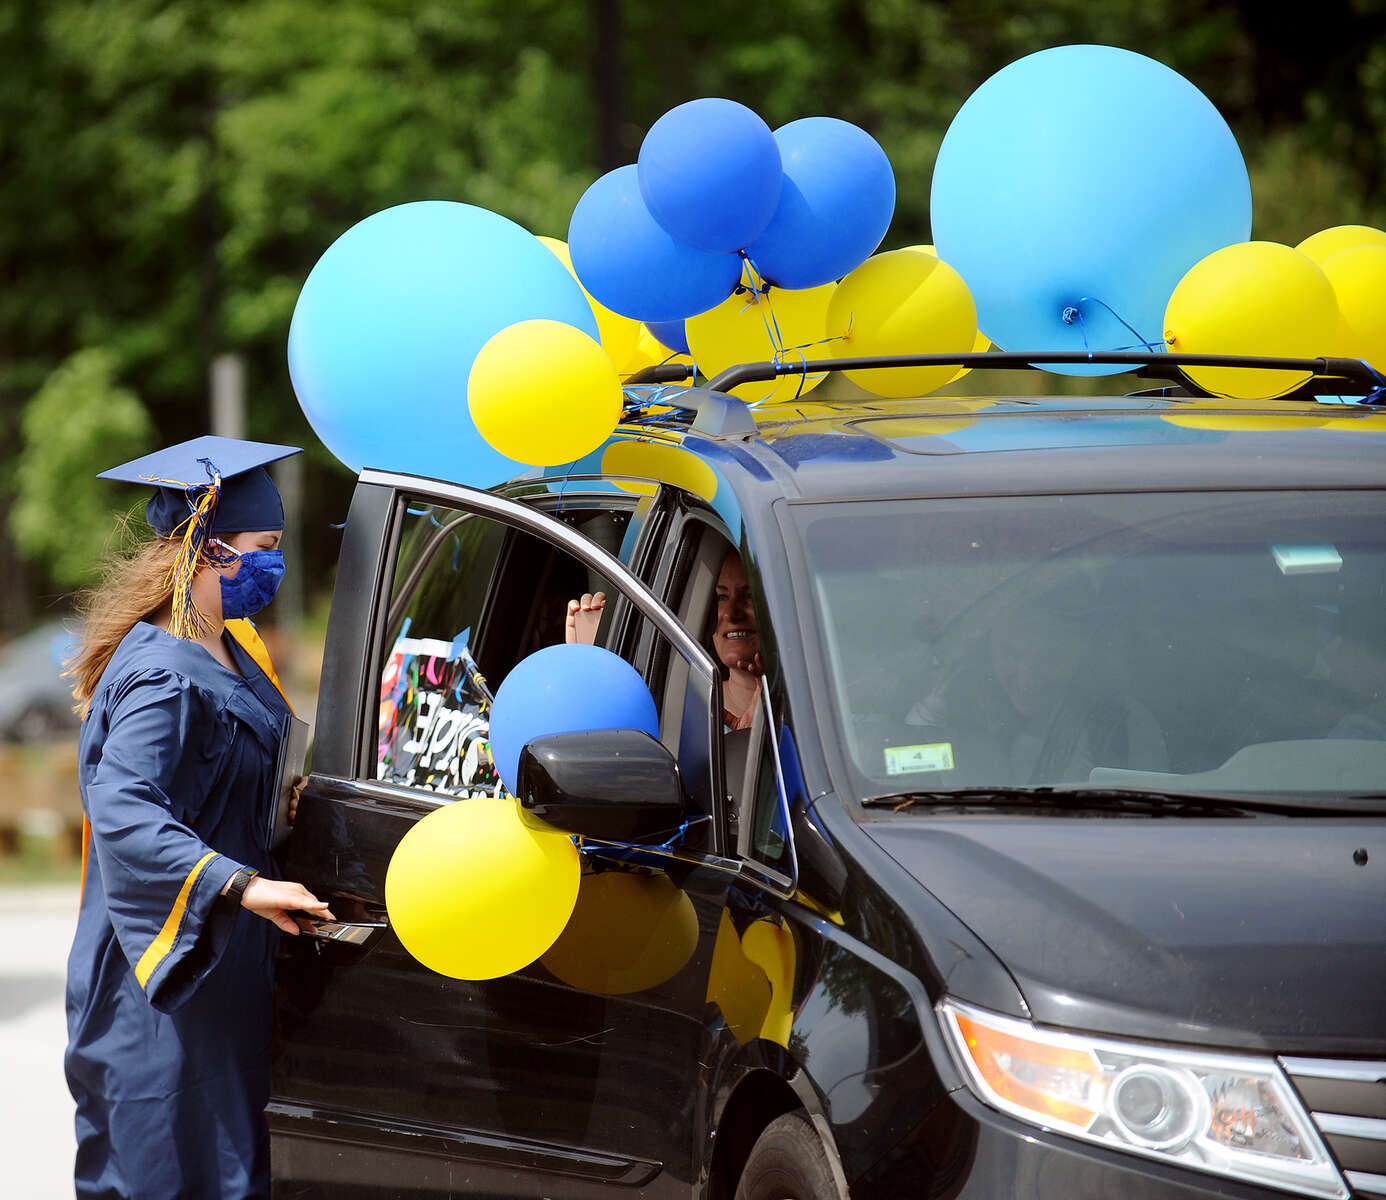 6/5/20-- LEXINGTON--  Julia Anderson, of Belmont, gets back into the car after receiving her drive-up diploma at Minuteman High School Commencement Ceremonies held Friday. [Daily News and Wicked Local Staff Photo/Art Illman]